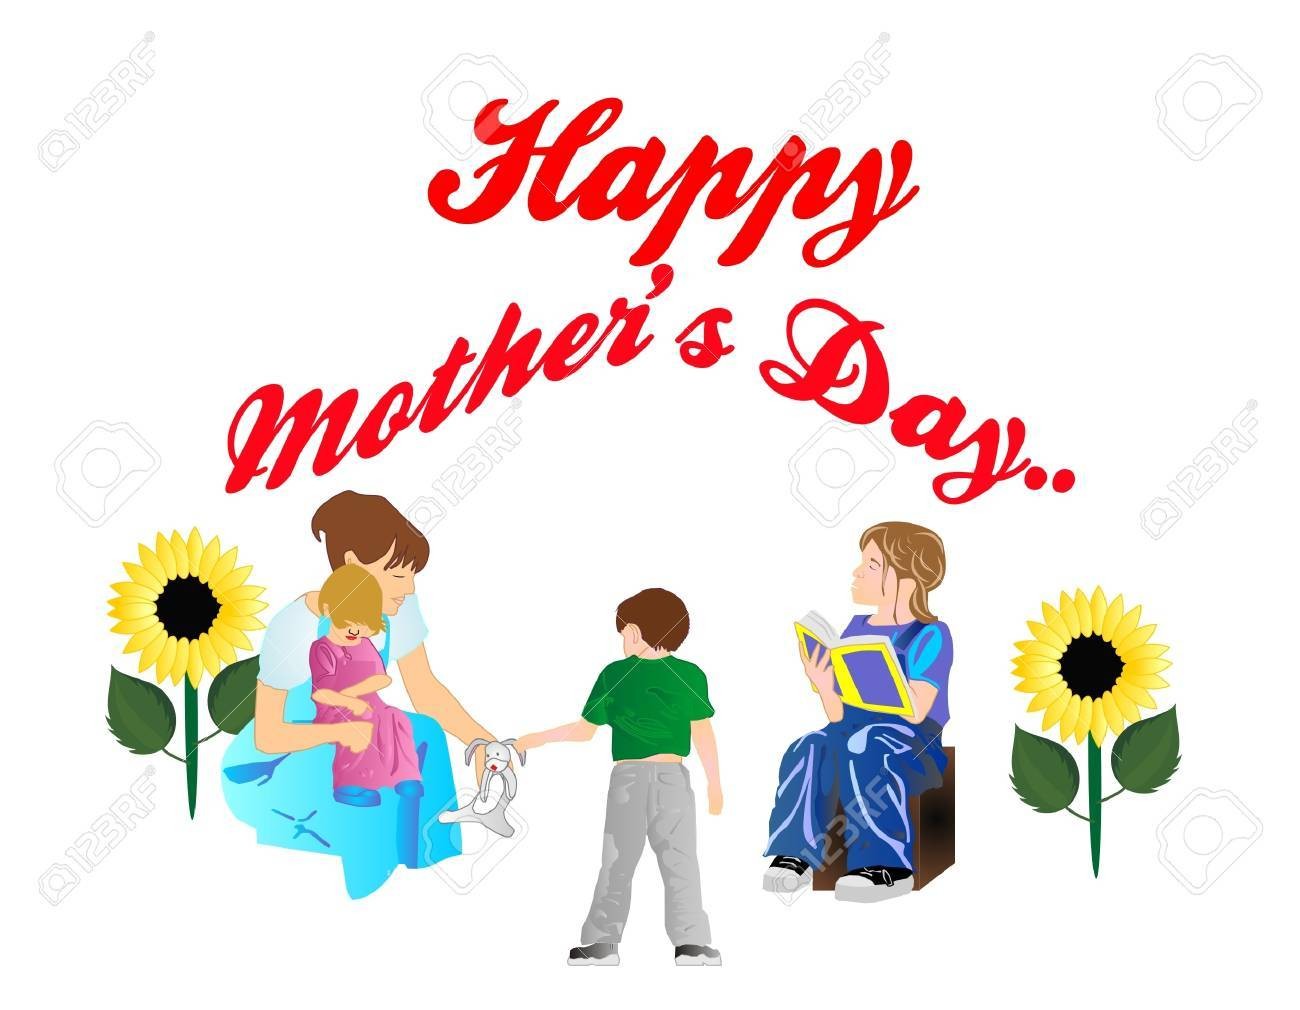 Mom holding one child, while another is getting his bunny and sister is reading to them all.  Kids celebrating their Mother!! Stock Vector - 9226547